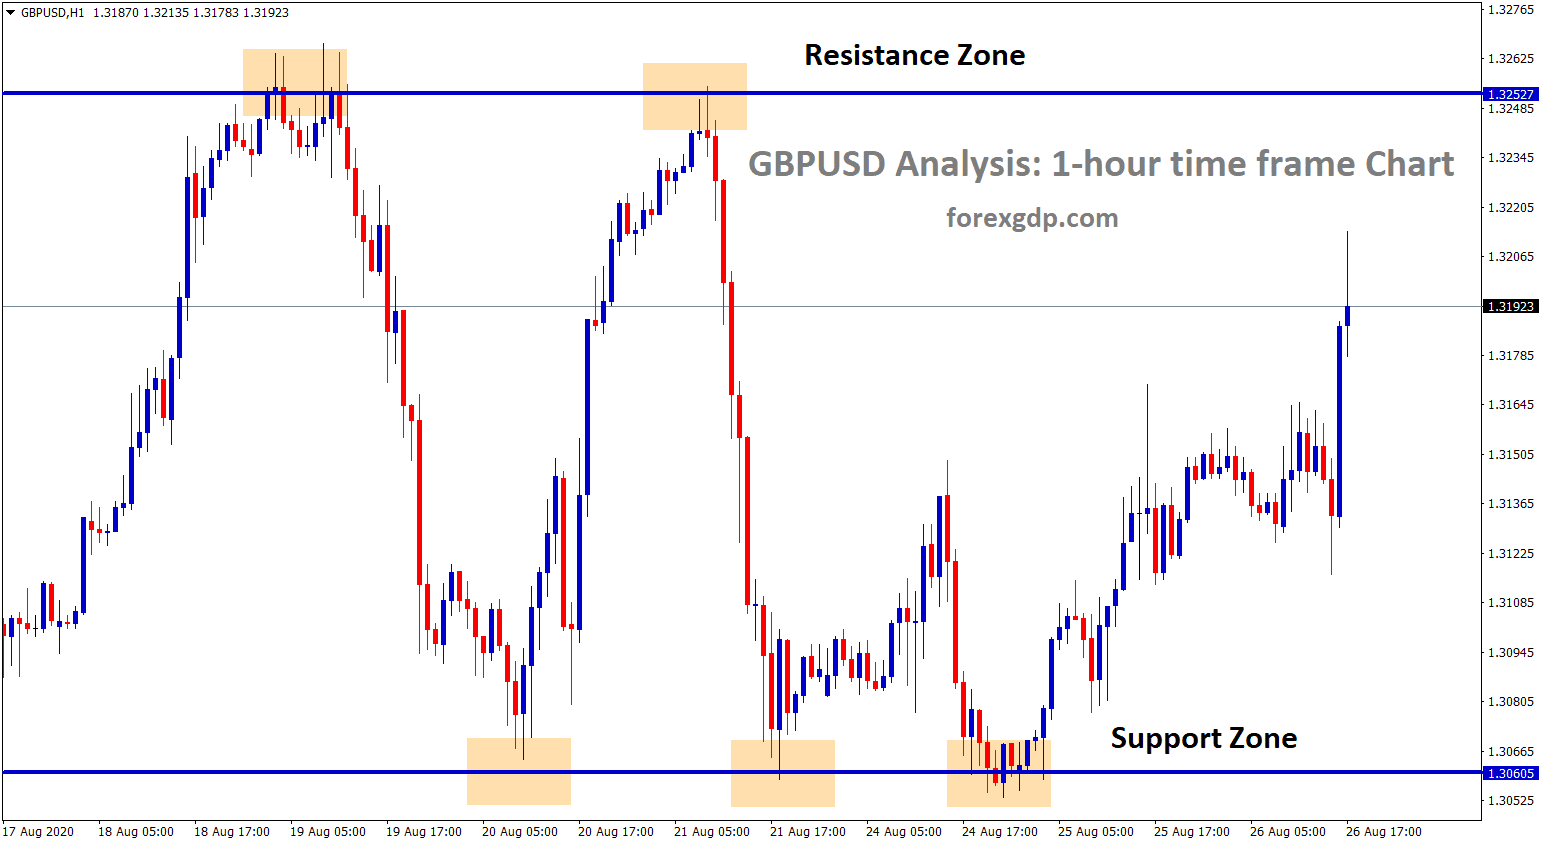 GBPUSD resistance and support zone range movement in h1